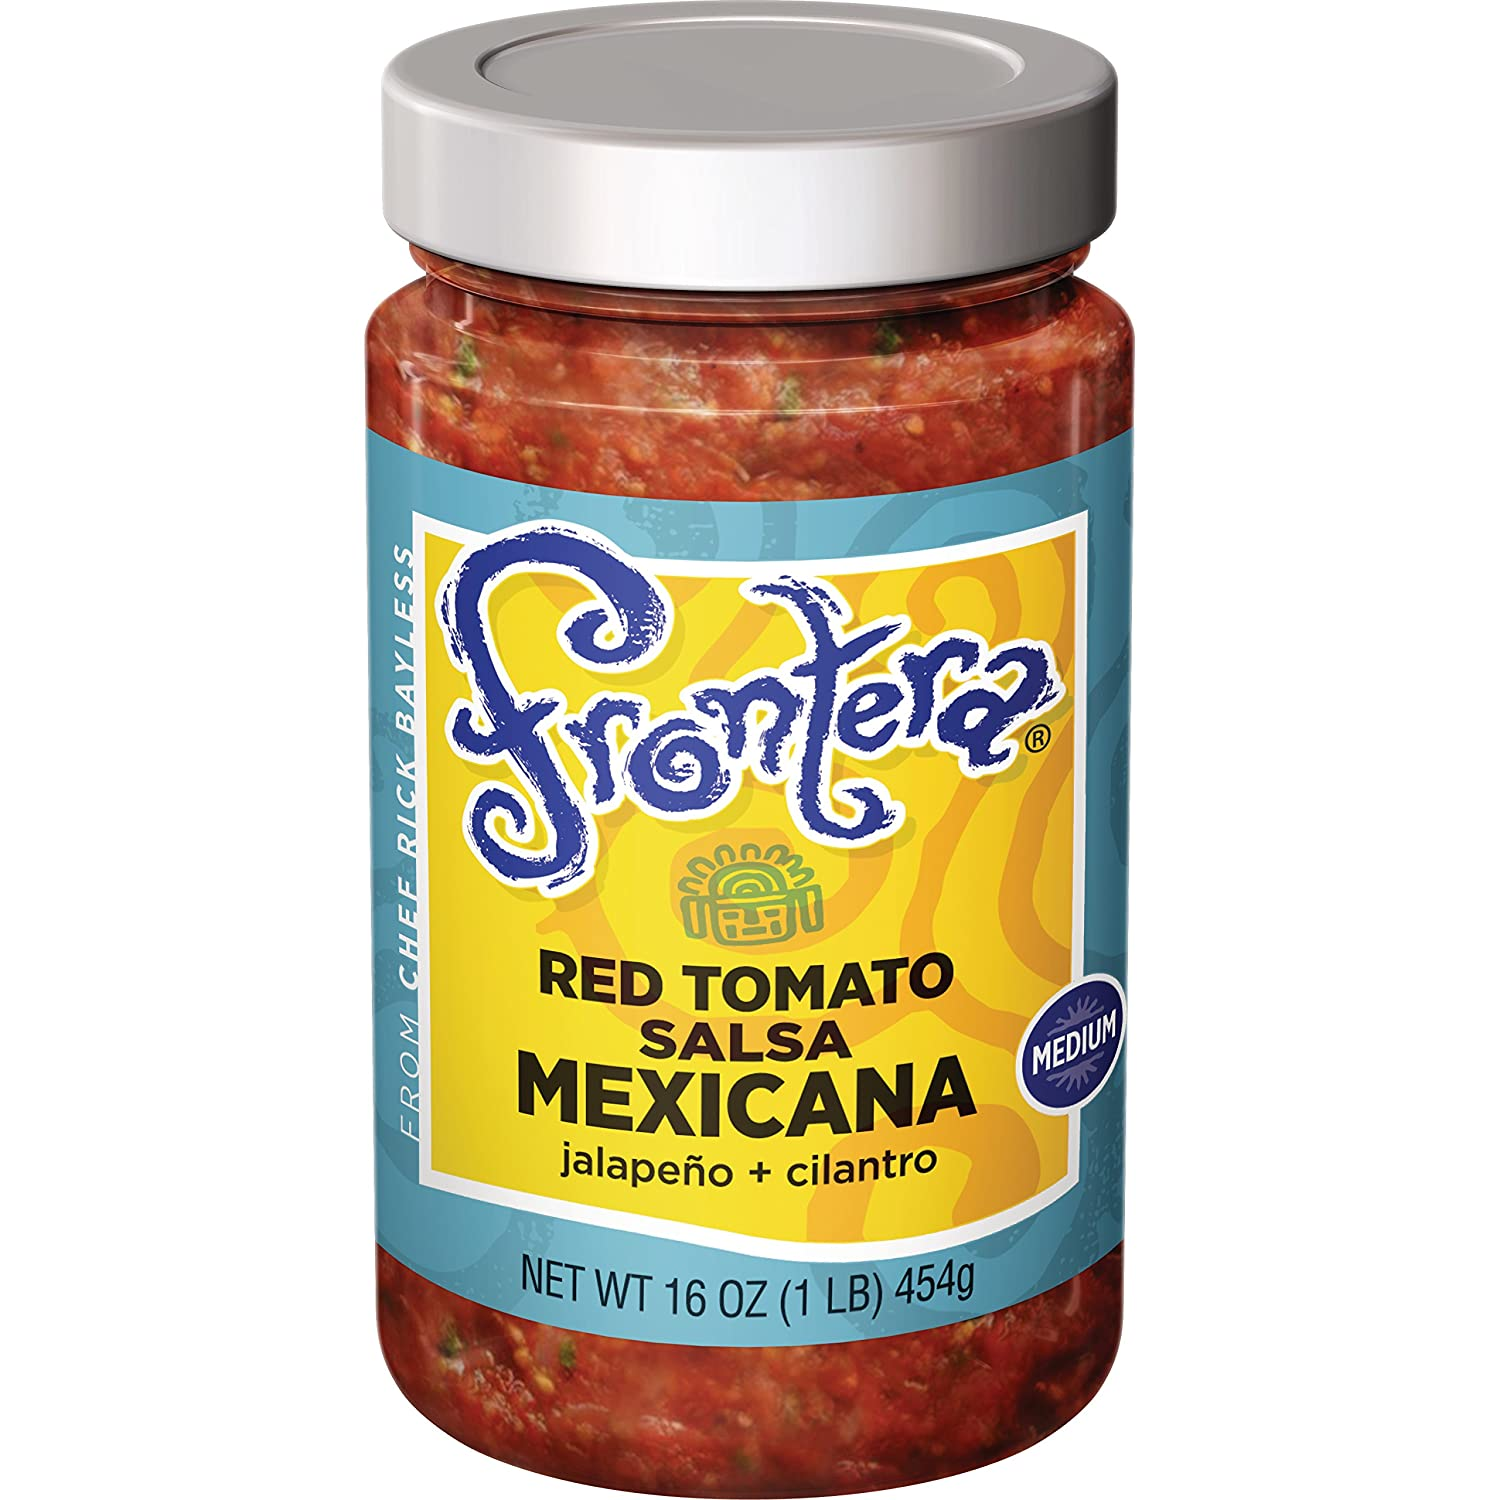 Frontera Salsa Mexicana, Mild, 16 Ounce: Amazon.com: Grocery & Gourmet Food